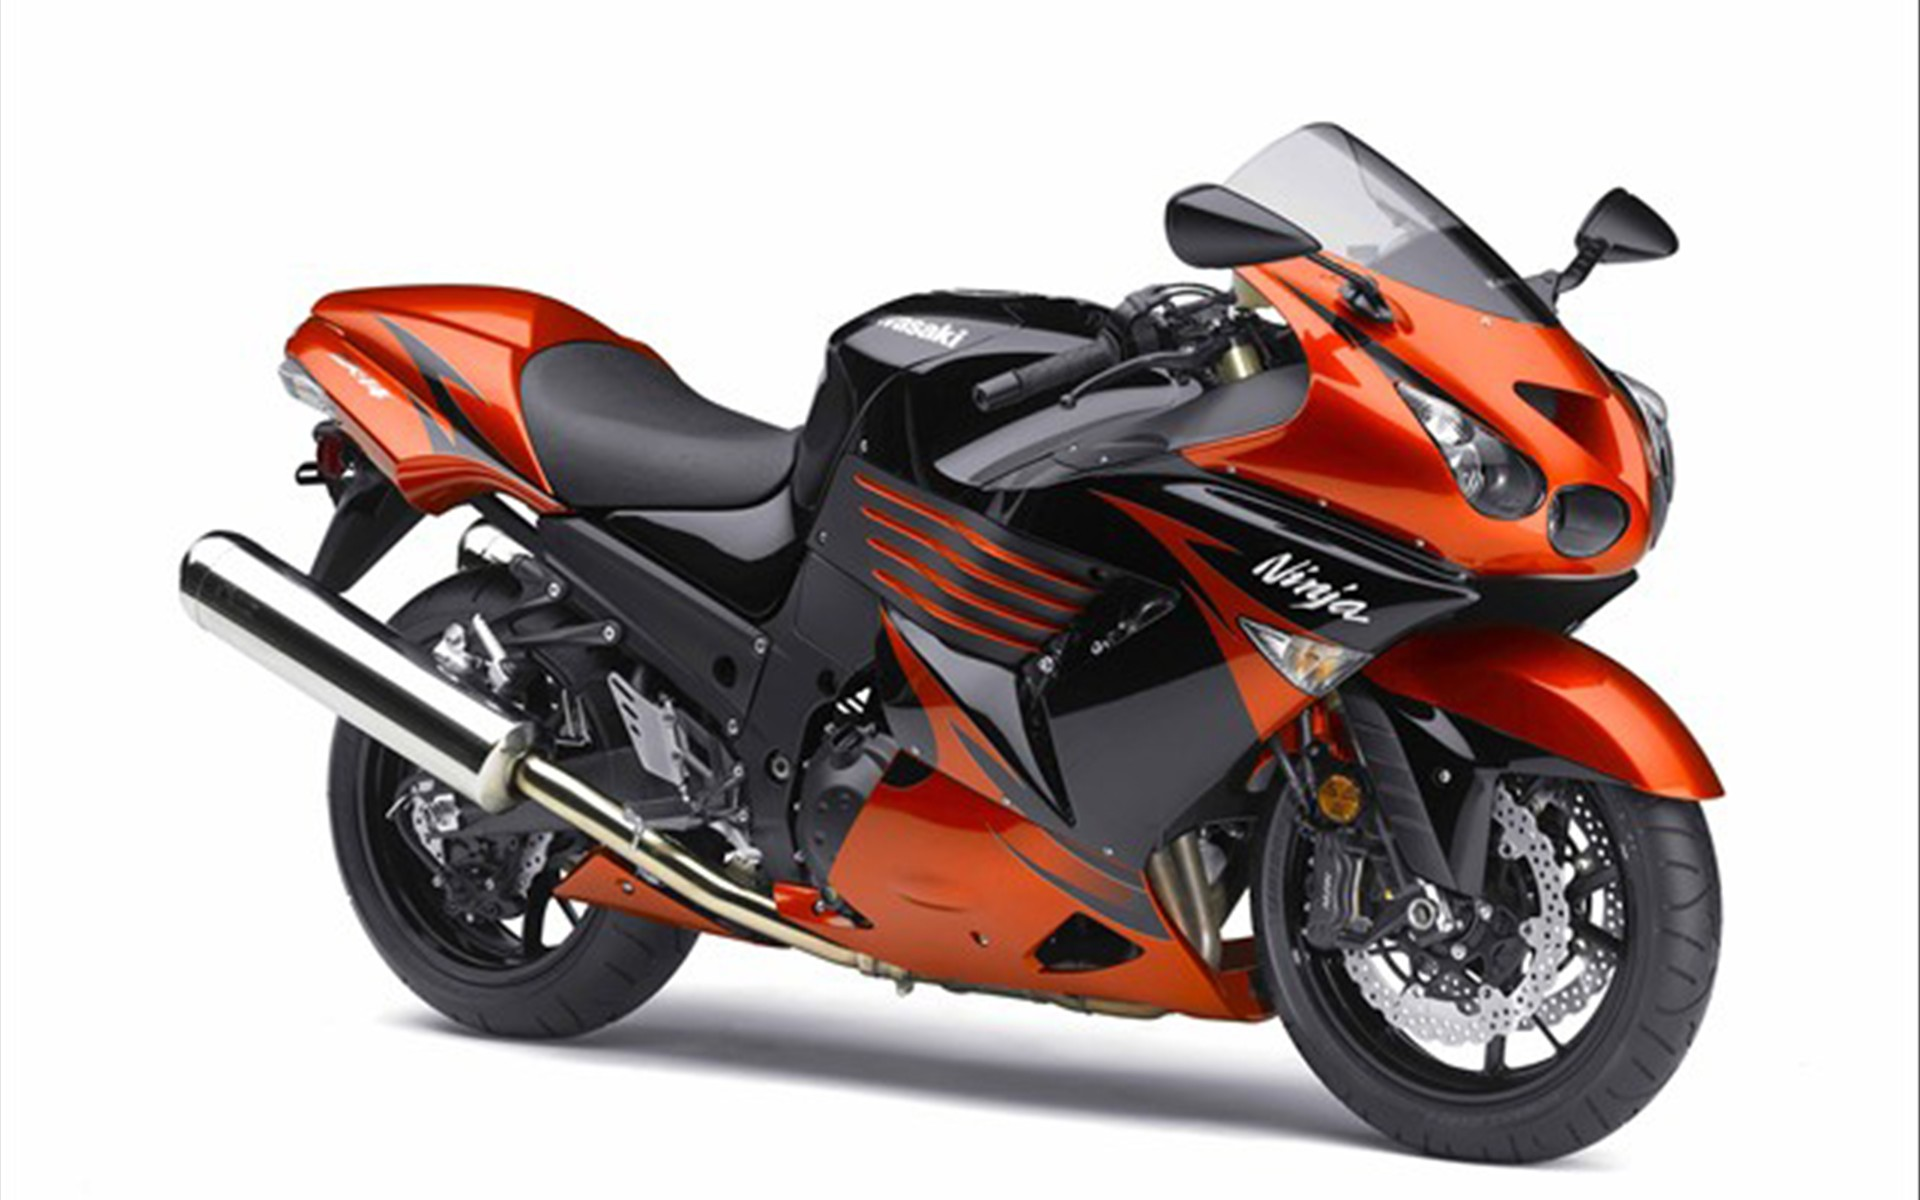 Sport Bikes Wallpapers For Android: Sport Bike Wallpapers